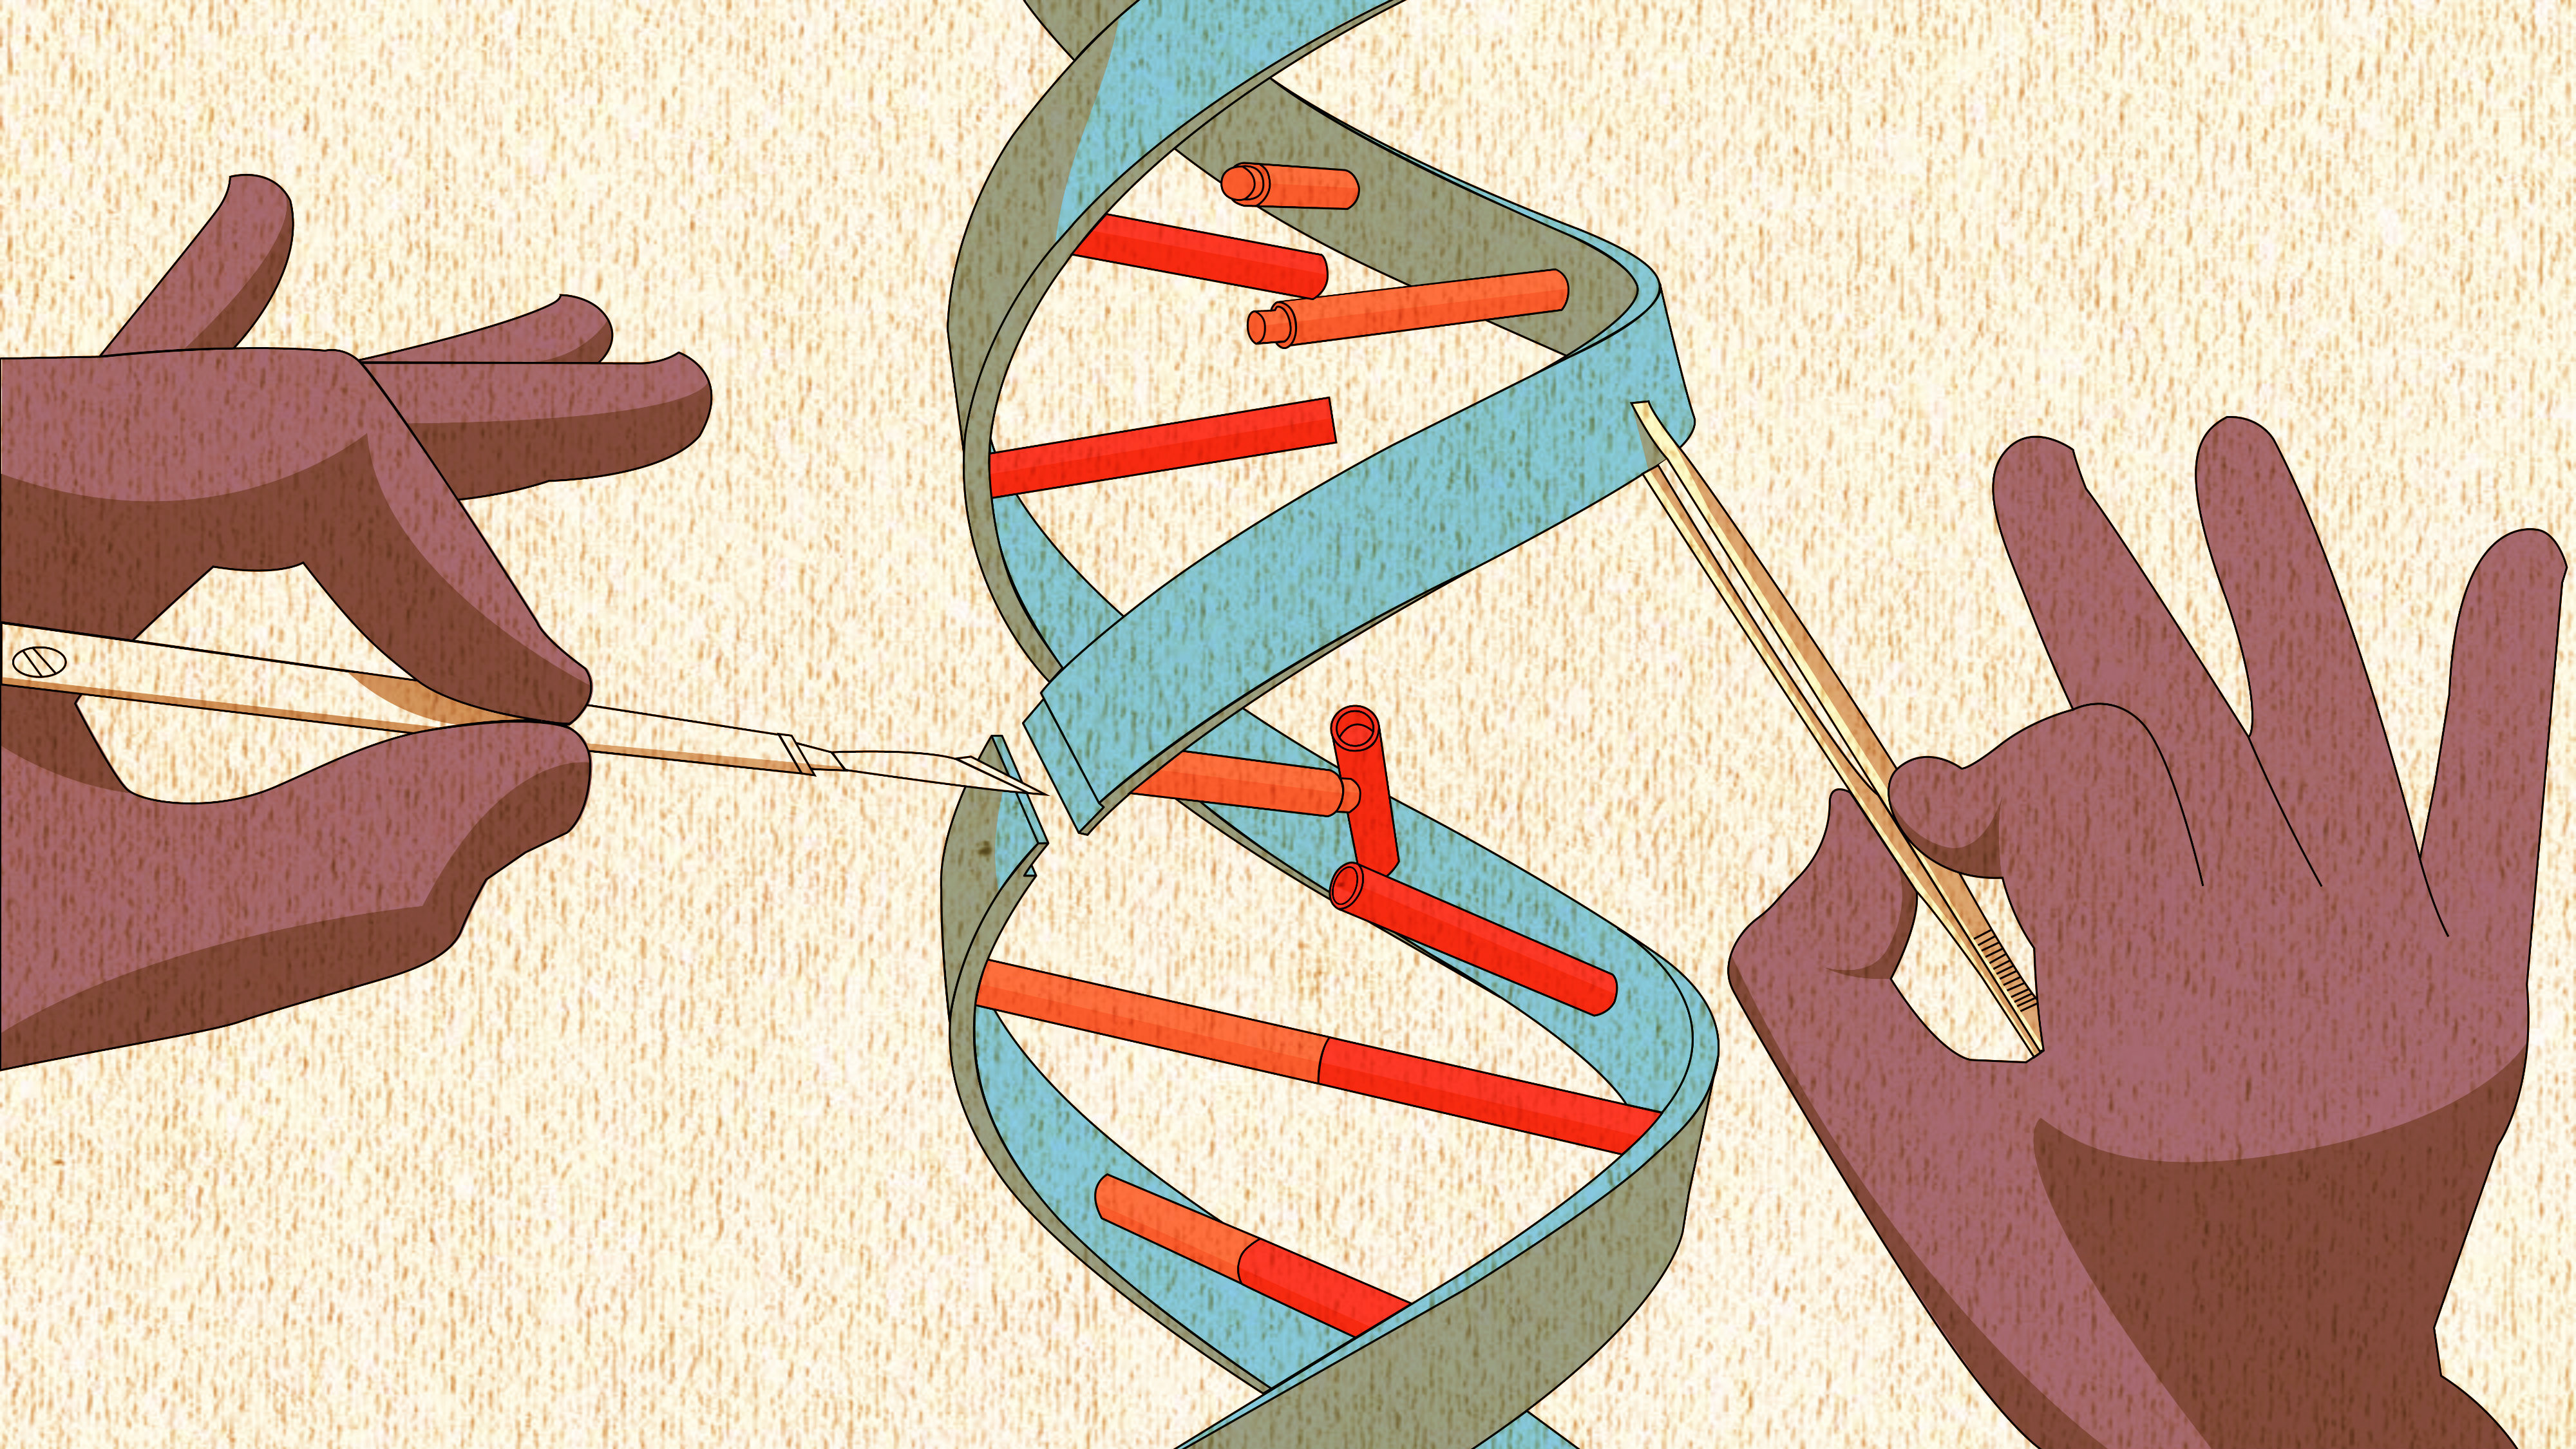 Scientists rewrote the DNA of an entire species